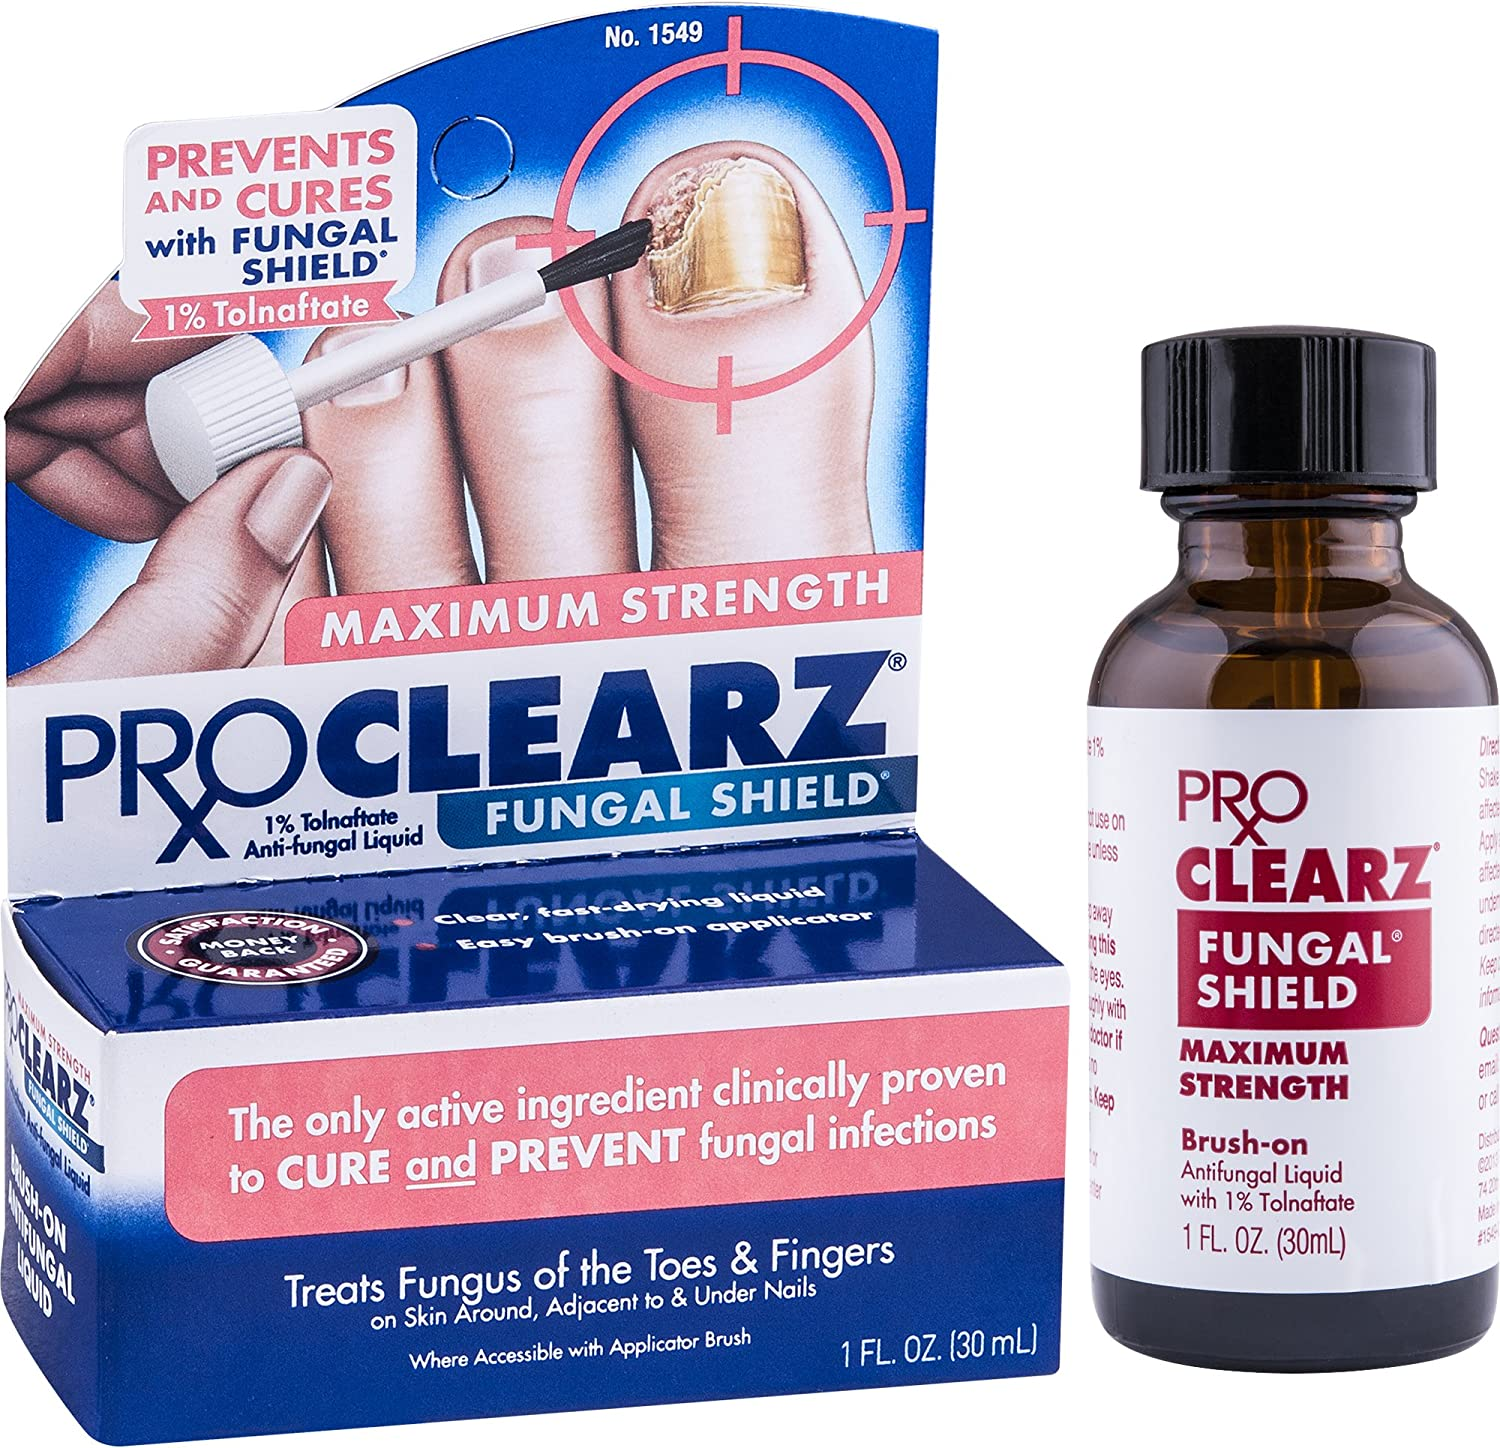 ProClearz Fungal Shield Maximum Strength Antifungal Liquid, 1 Ounce Bottle (Pack of 2)